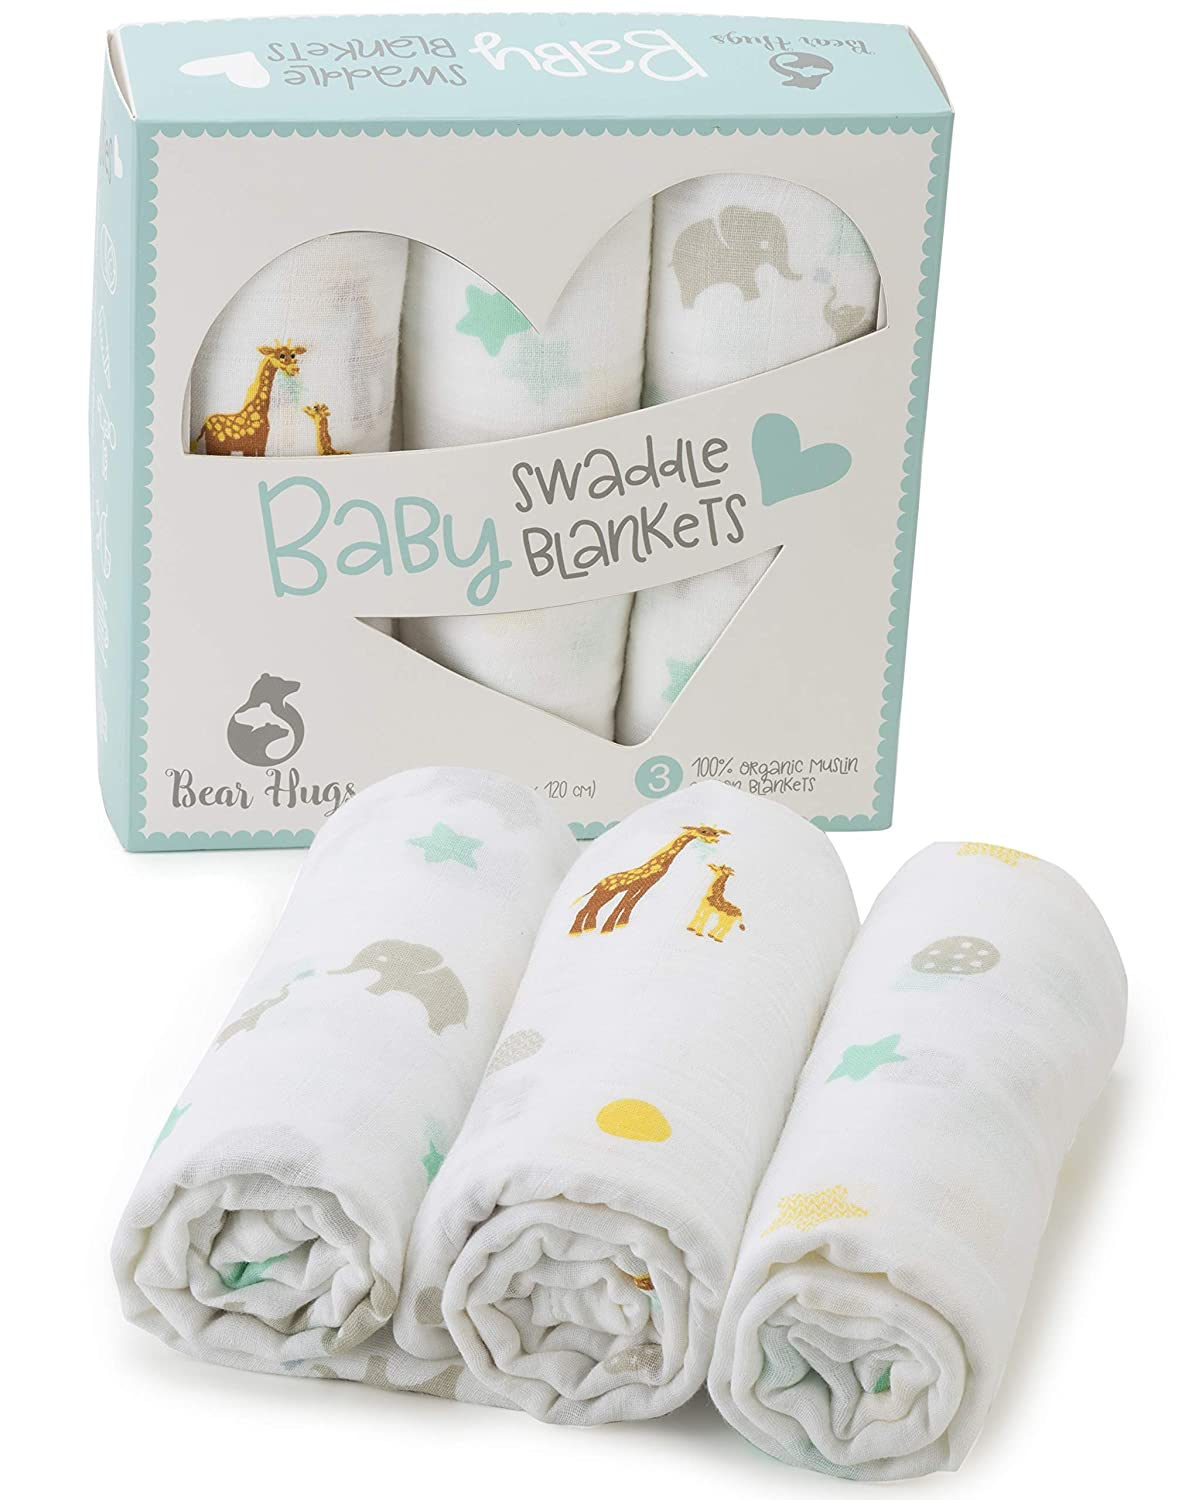 Premium Organic Muslin Swaddle Blankets | 47 x 47 inches ( 3 pack ) | Beautiful Gift Box | Super Soft 100% Muslin Cotton | Great for Boys and Girls - Unisex | Elephant and Giraffe Designs KTSRetail SwaddleBlankets01